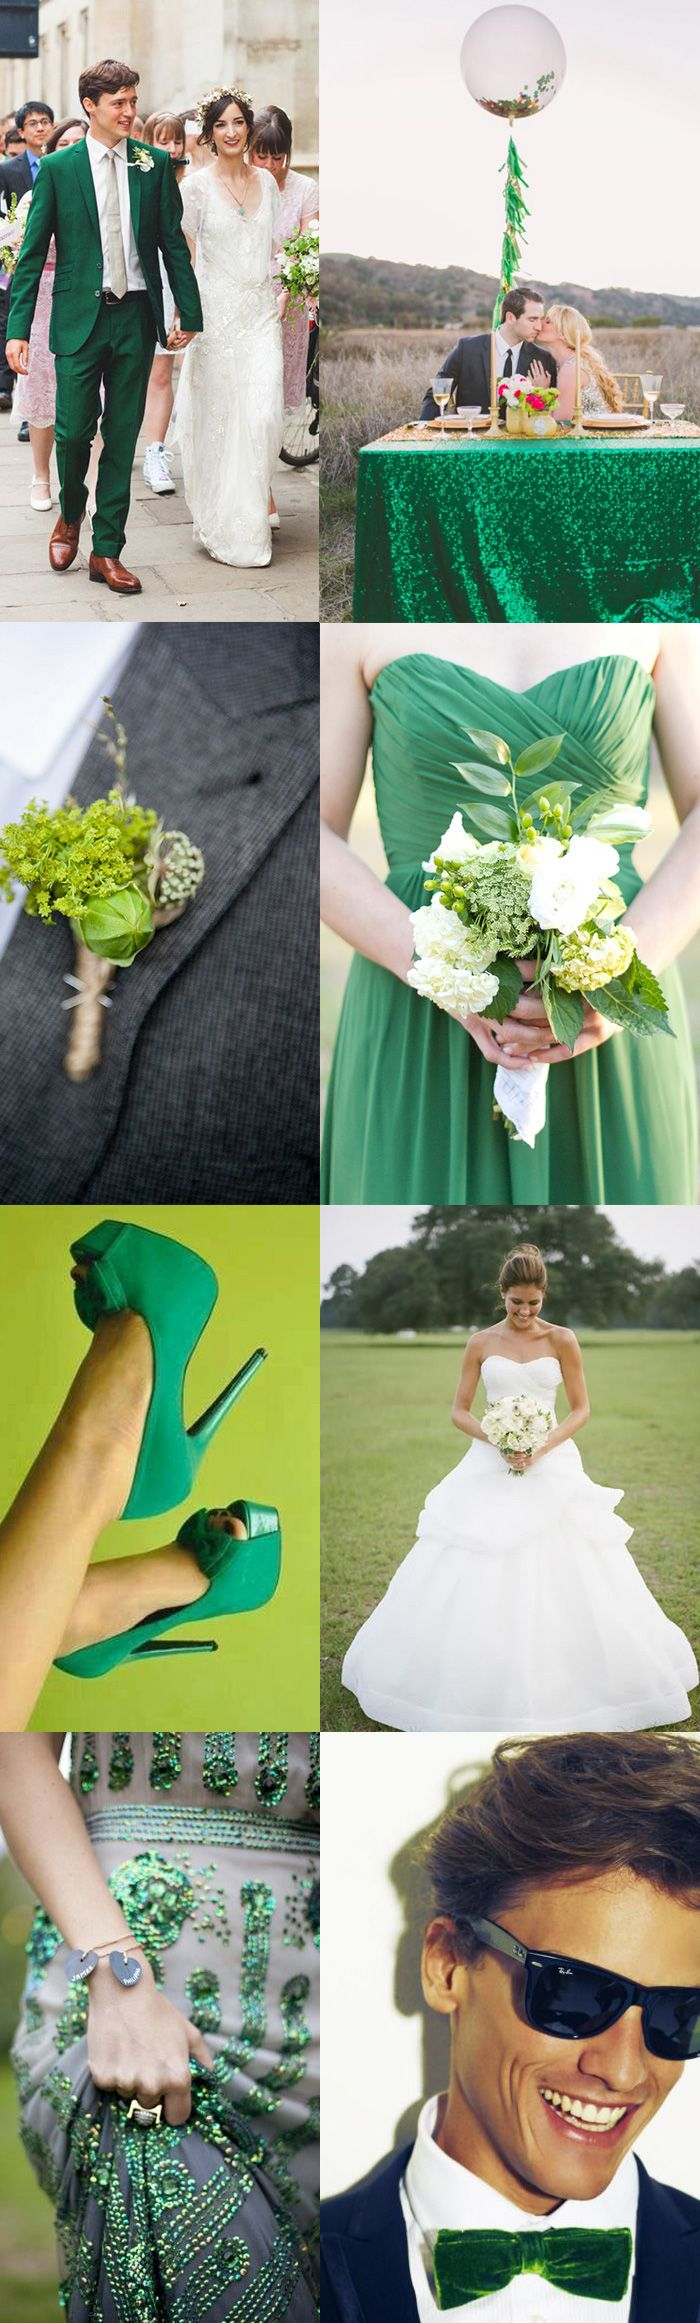 "I want to feature the dazzling possibilities of Going Green when it comes to saying your ""I Do's"". Green is enthusiastically optimistic, opulent and ridiculously charismatic when it comes to wedding wear. Green lace, emerald sequins, clover green bow ties; the options for going green have never been as handsome, or enticing"